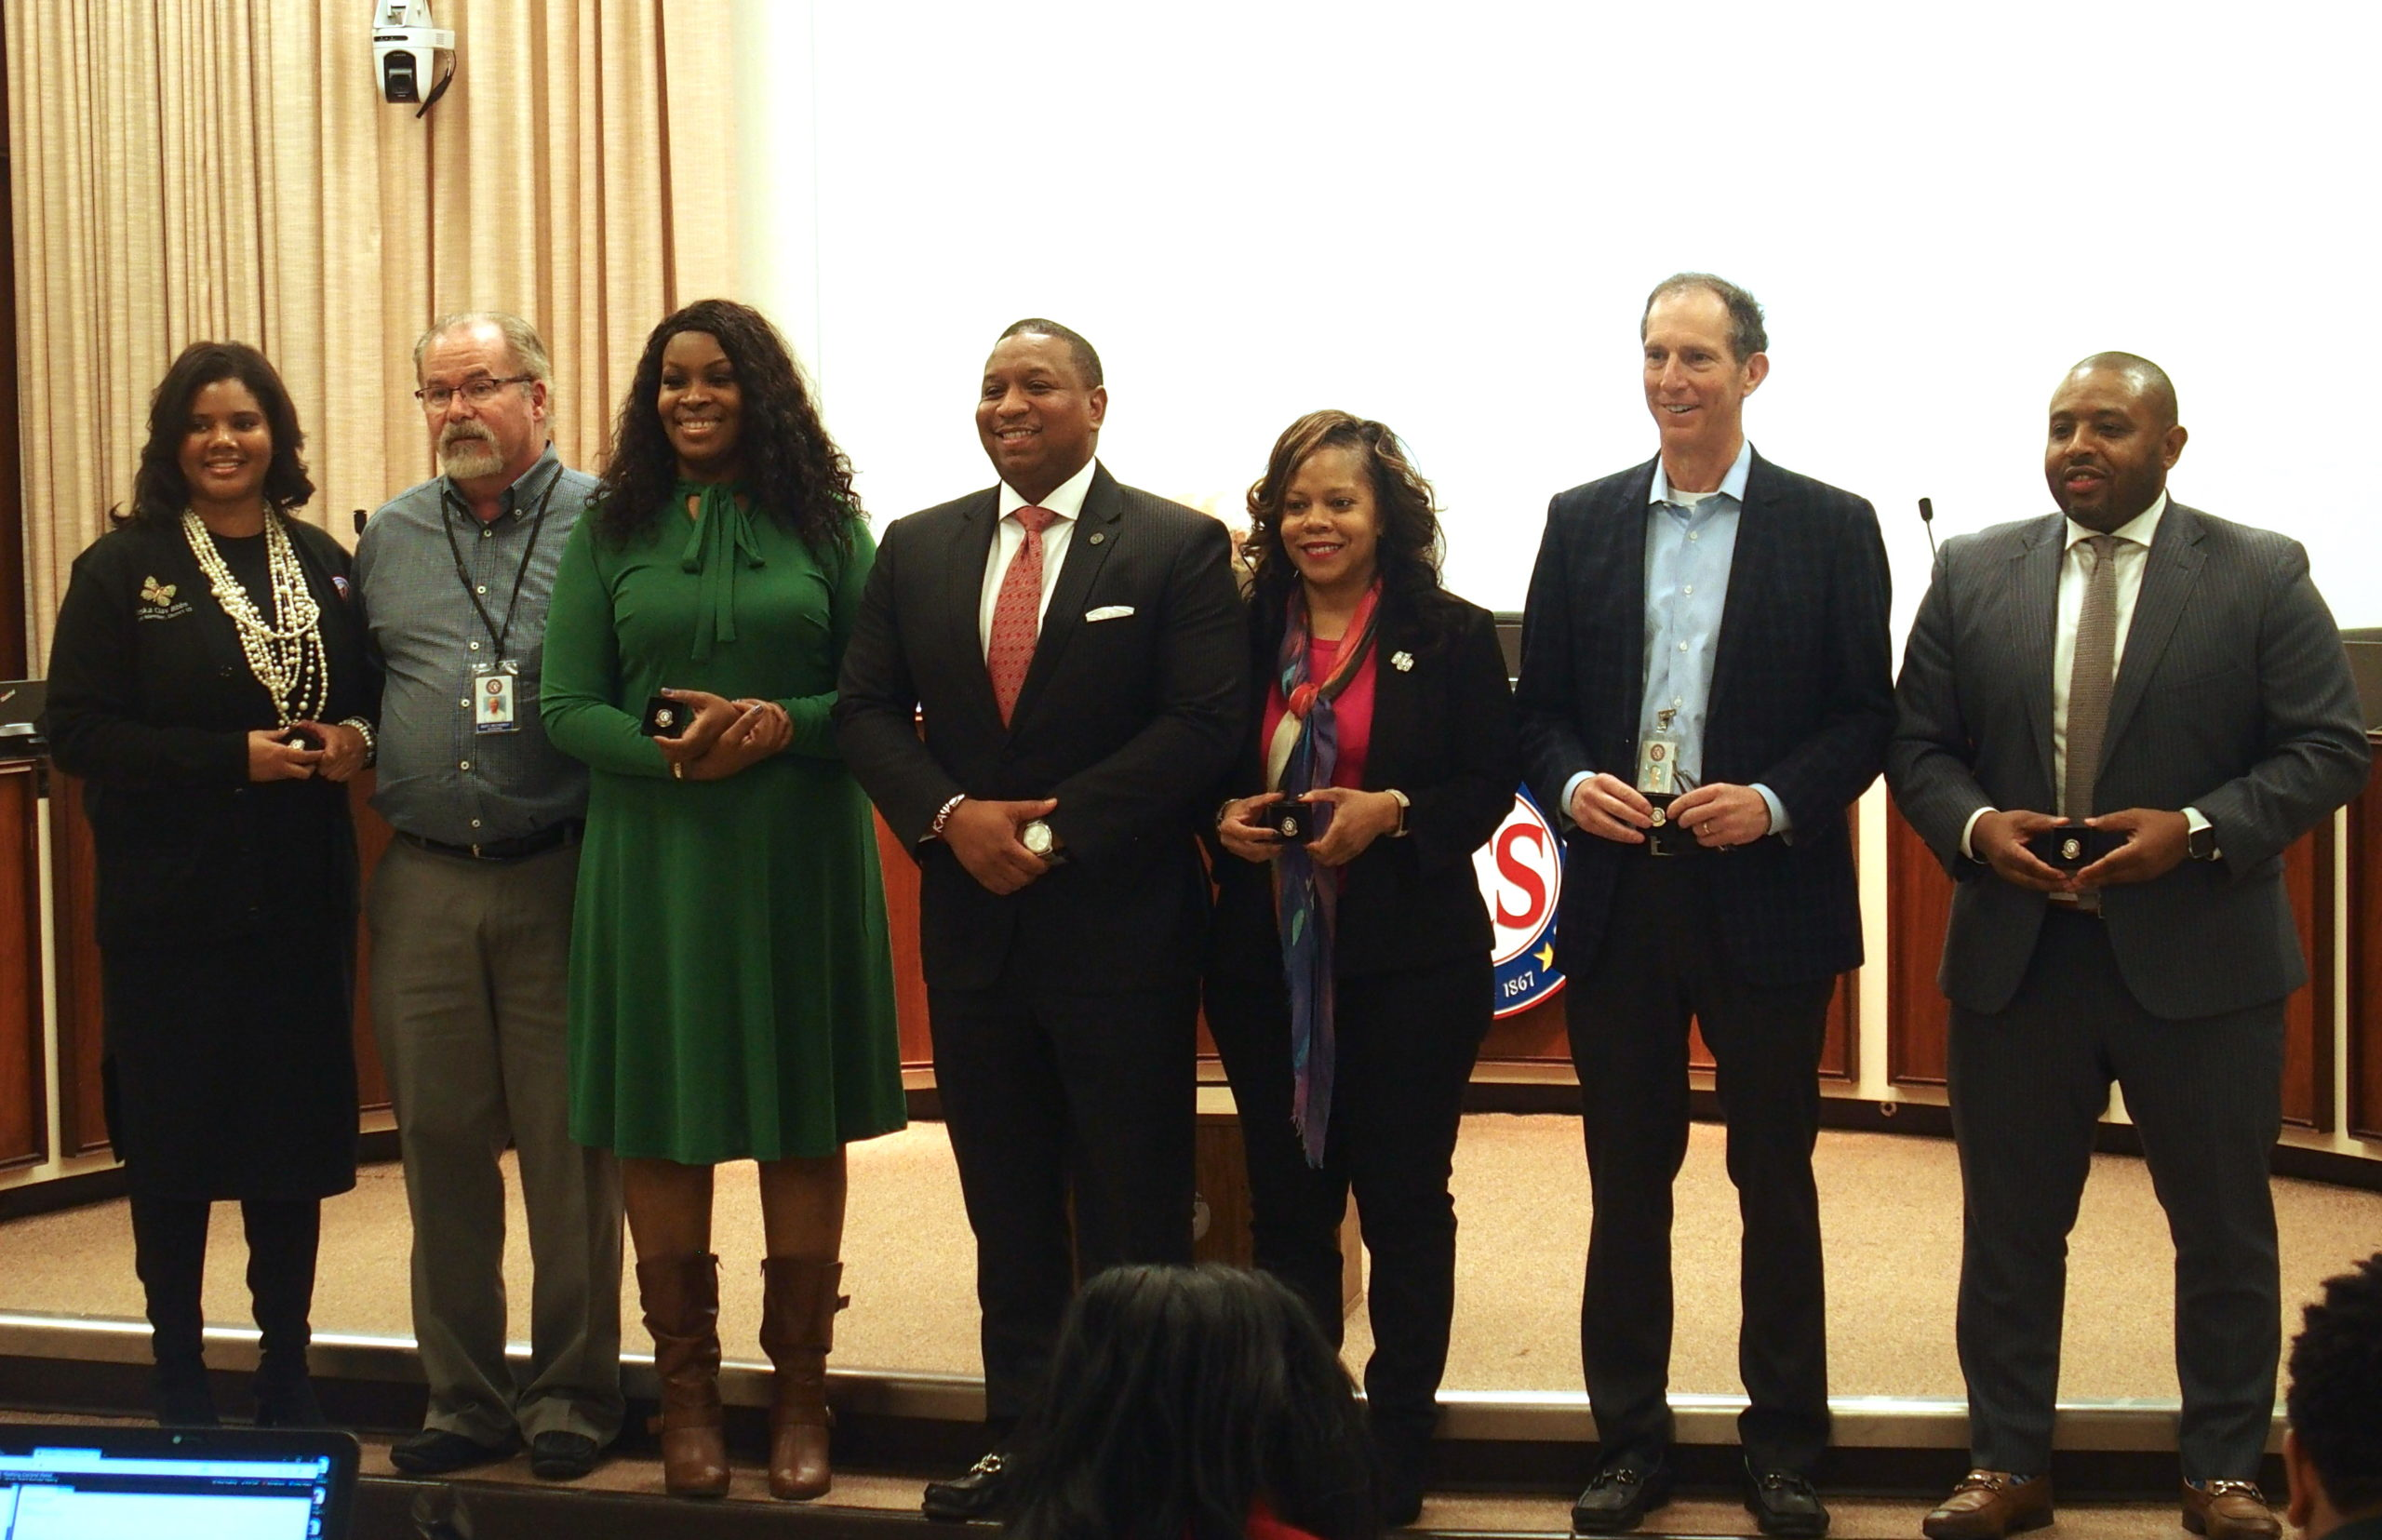 Superintendent Joris Ray, center, honors long-serving school board members at a meeting last week. From left, Miska Clay Bibbs, Scott McCormick, and Stephanie Love are up for re-election this year. Shante Avant and Billy Orgel won re-election in 2018. Kevin Woods, right, is not seeking re-election.